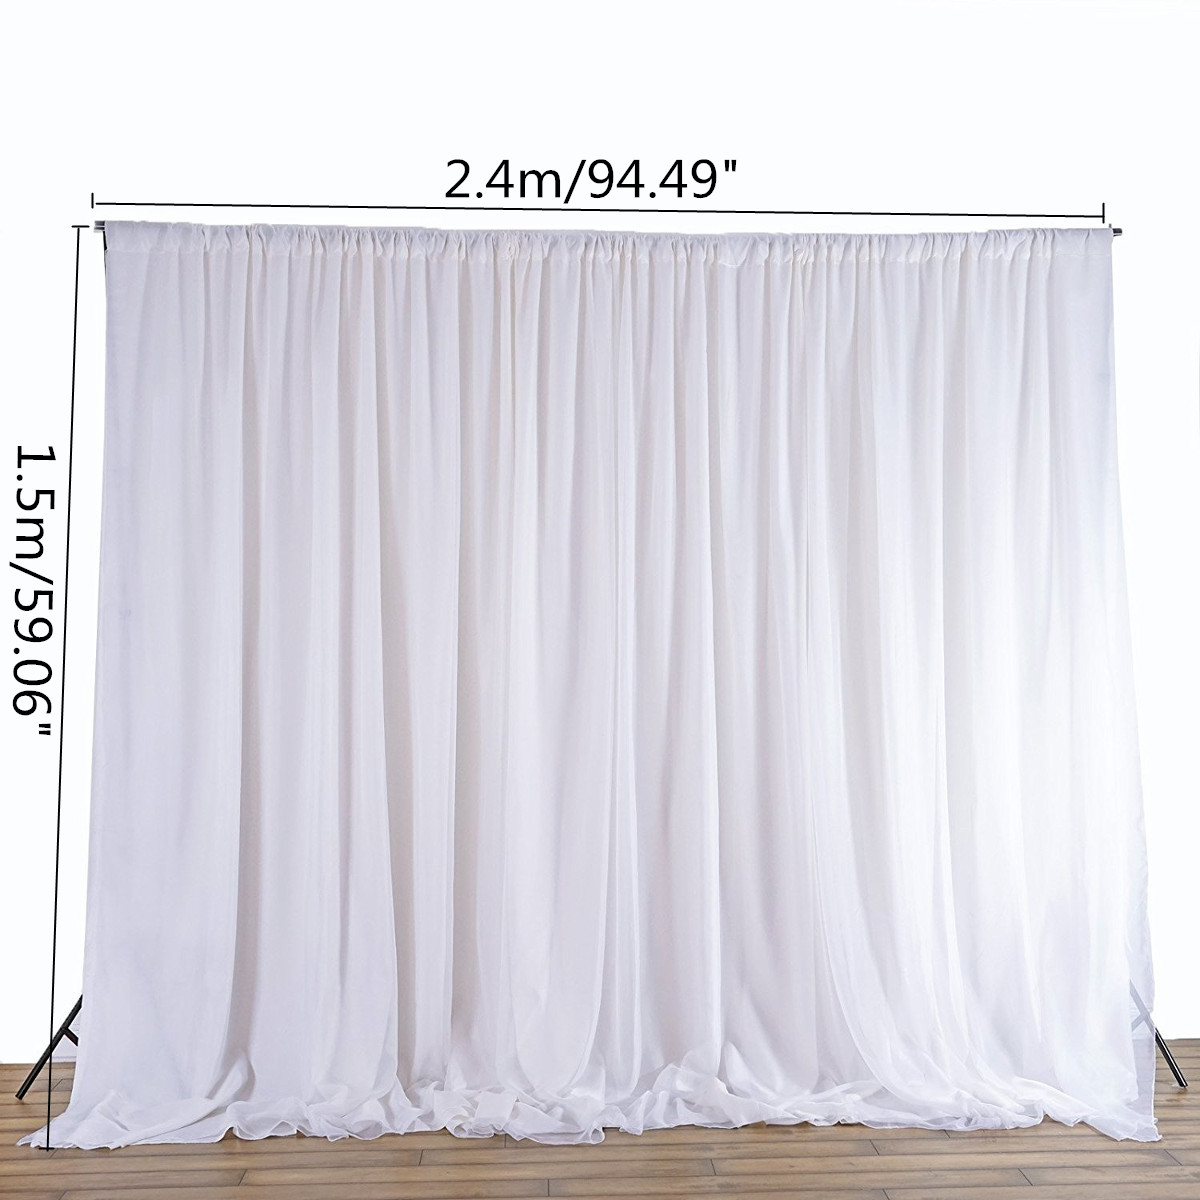 Diy Drapes For Wedding: White Sheer Silk Cloth Drapes Panels Hanging Curtains